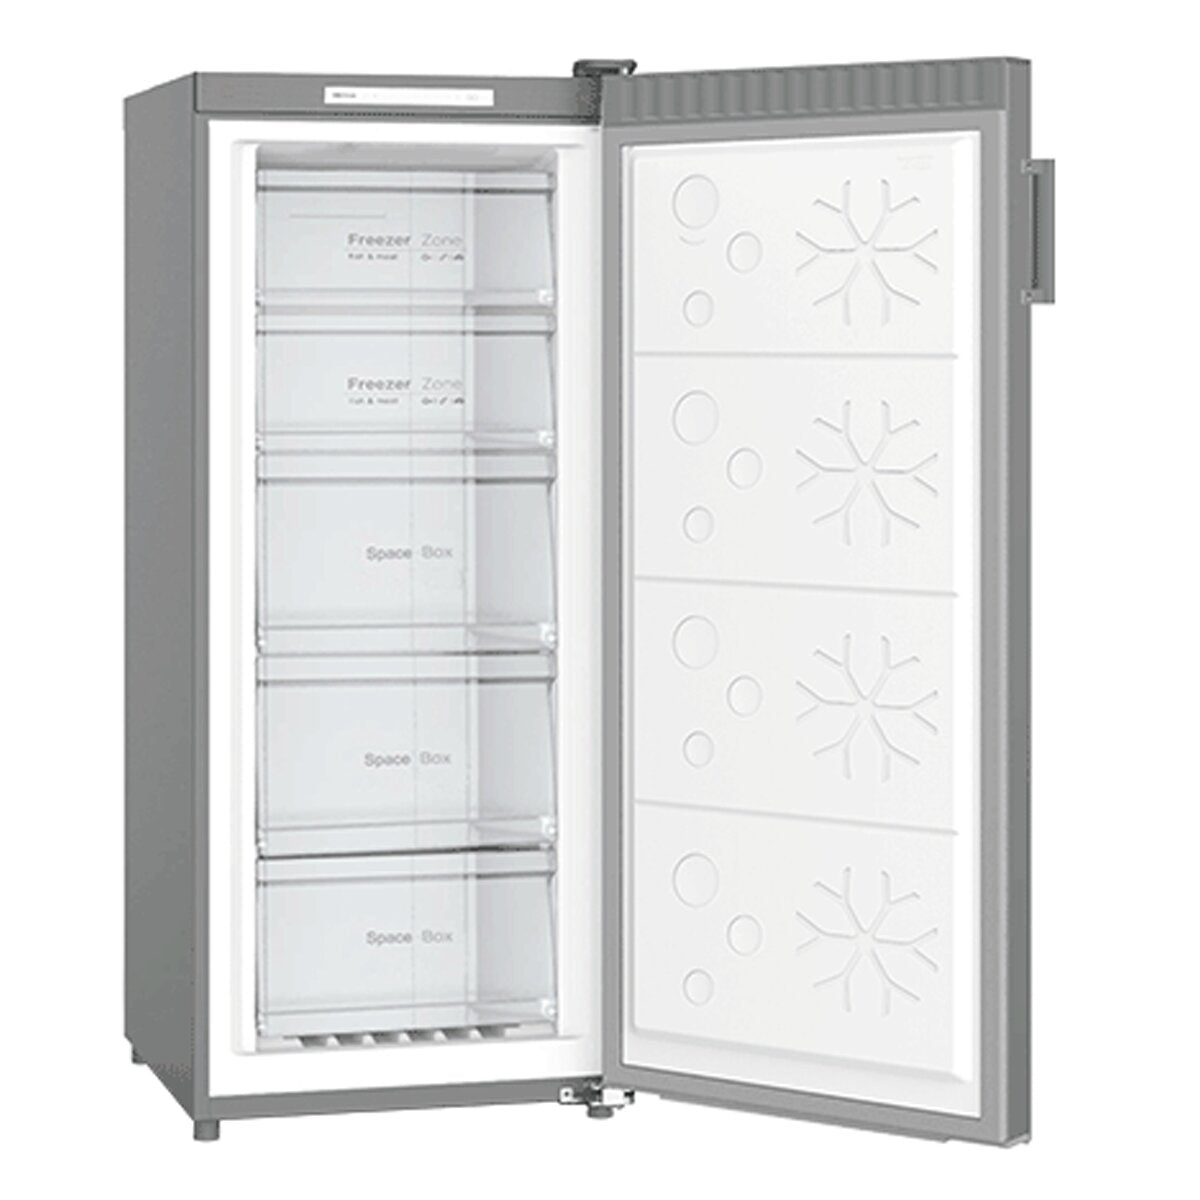 Chiq 190 L Upright Freezer (Brand New) - Brisbane Home Appliances